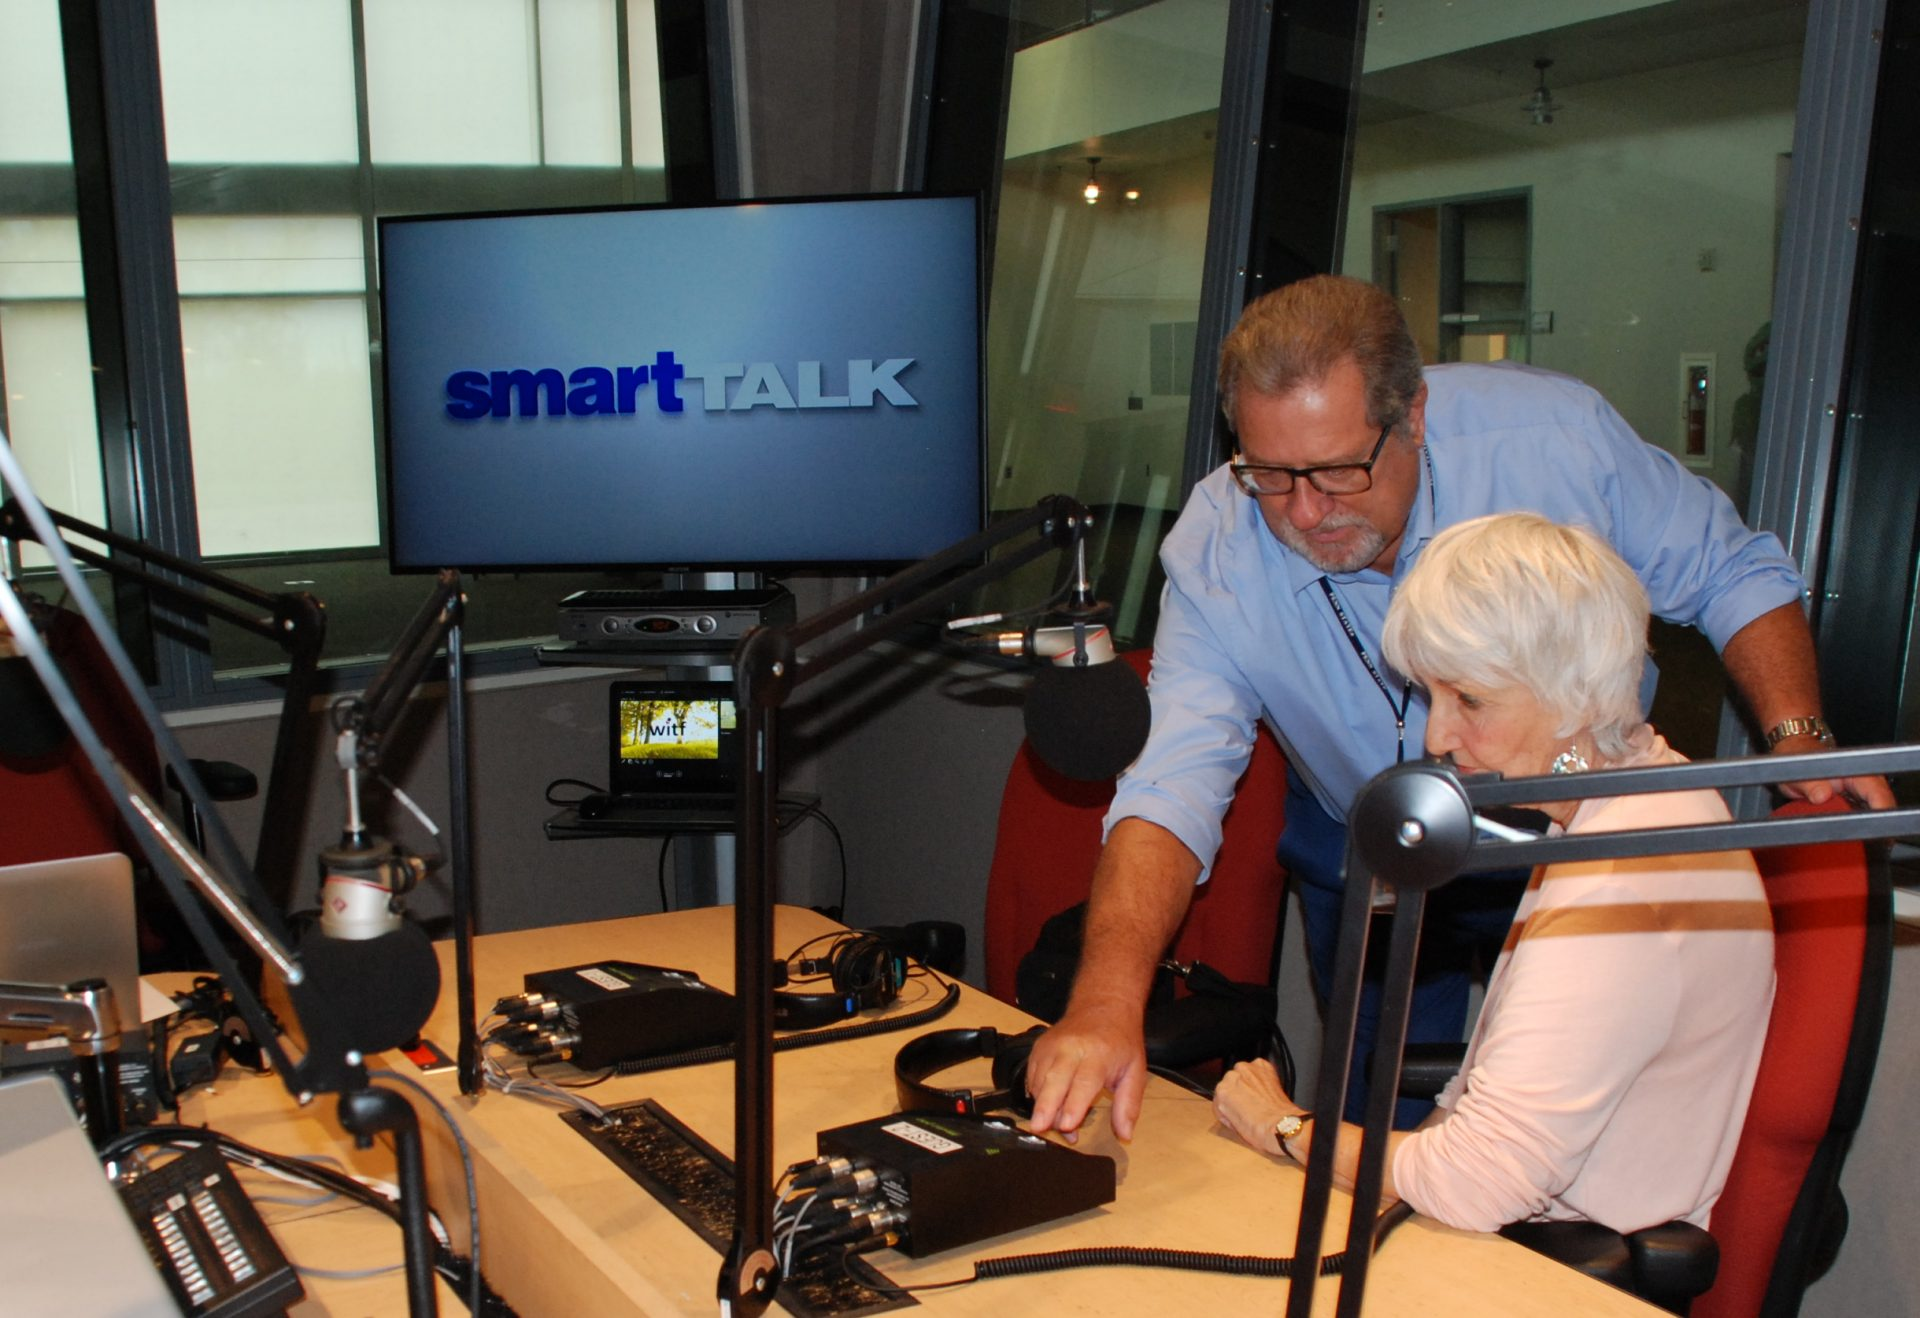 Mother and author Sue Klebold appears on Smart Talk, September 17, 2019.